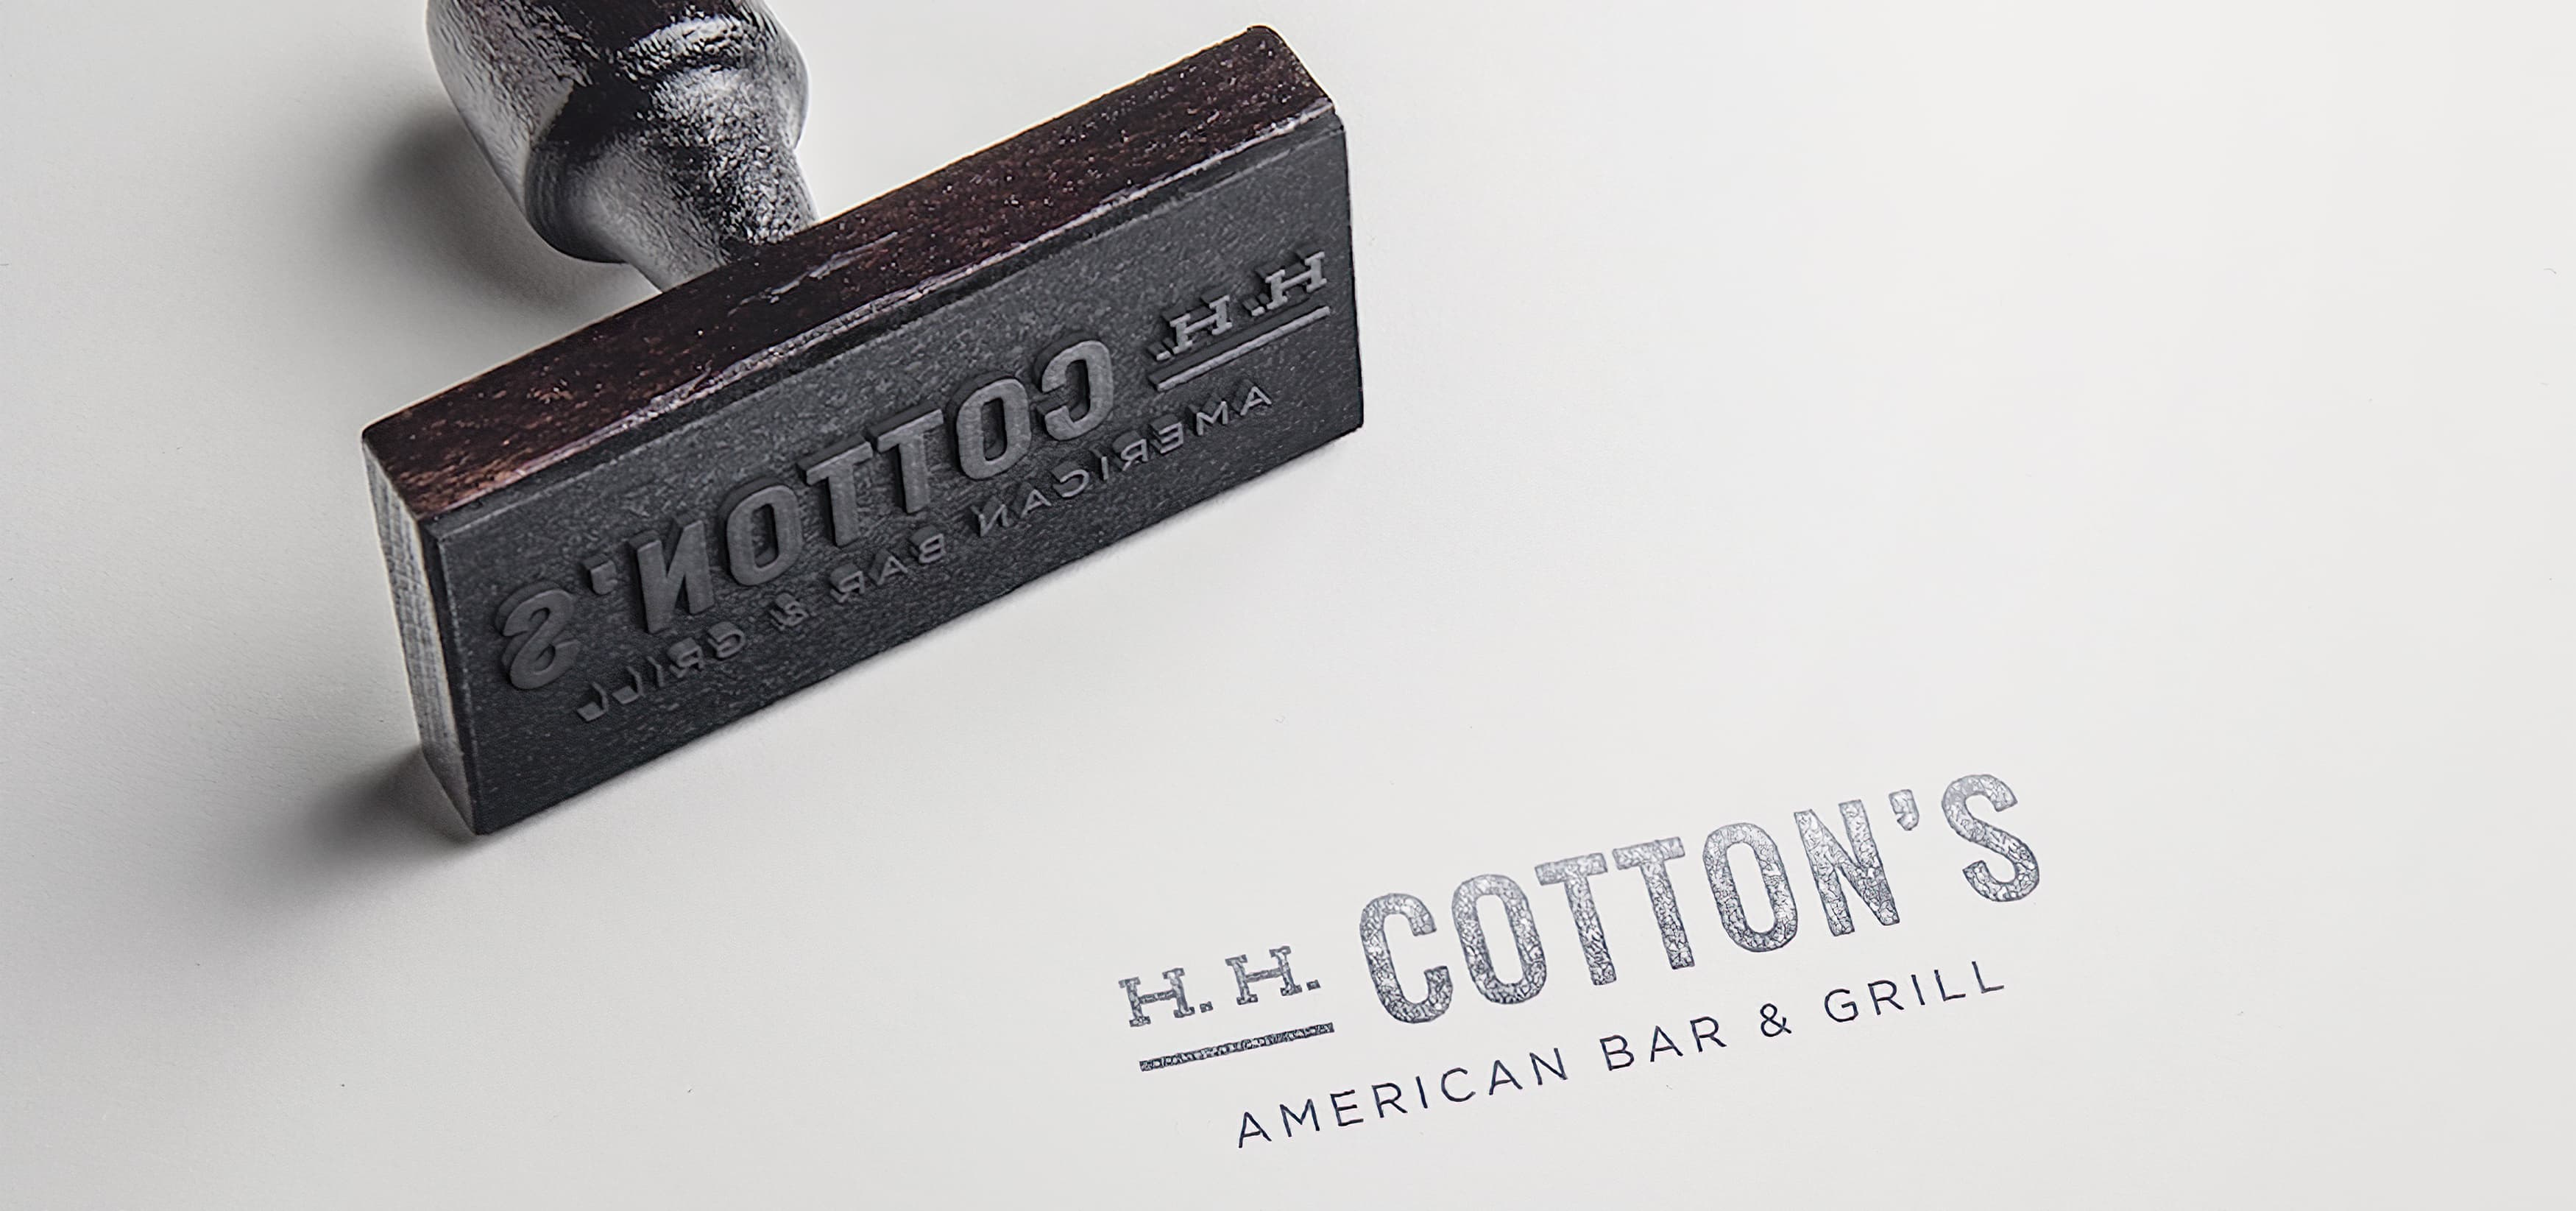 RSM Design worked with H.H. Cotton's, a restaurant in San Clemente, California to create a logo and brand identity as well as environmental graphics and signage.